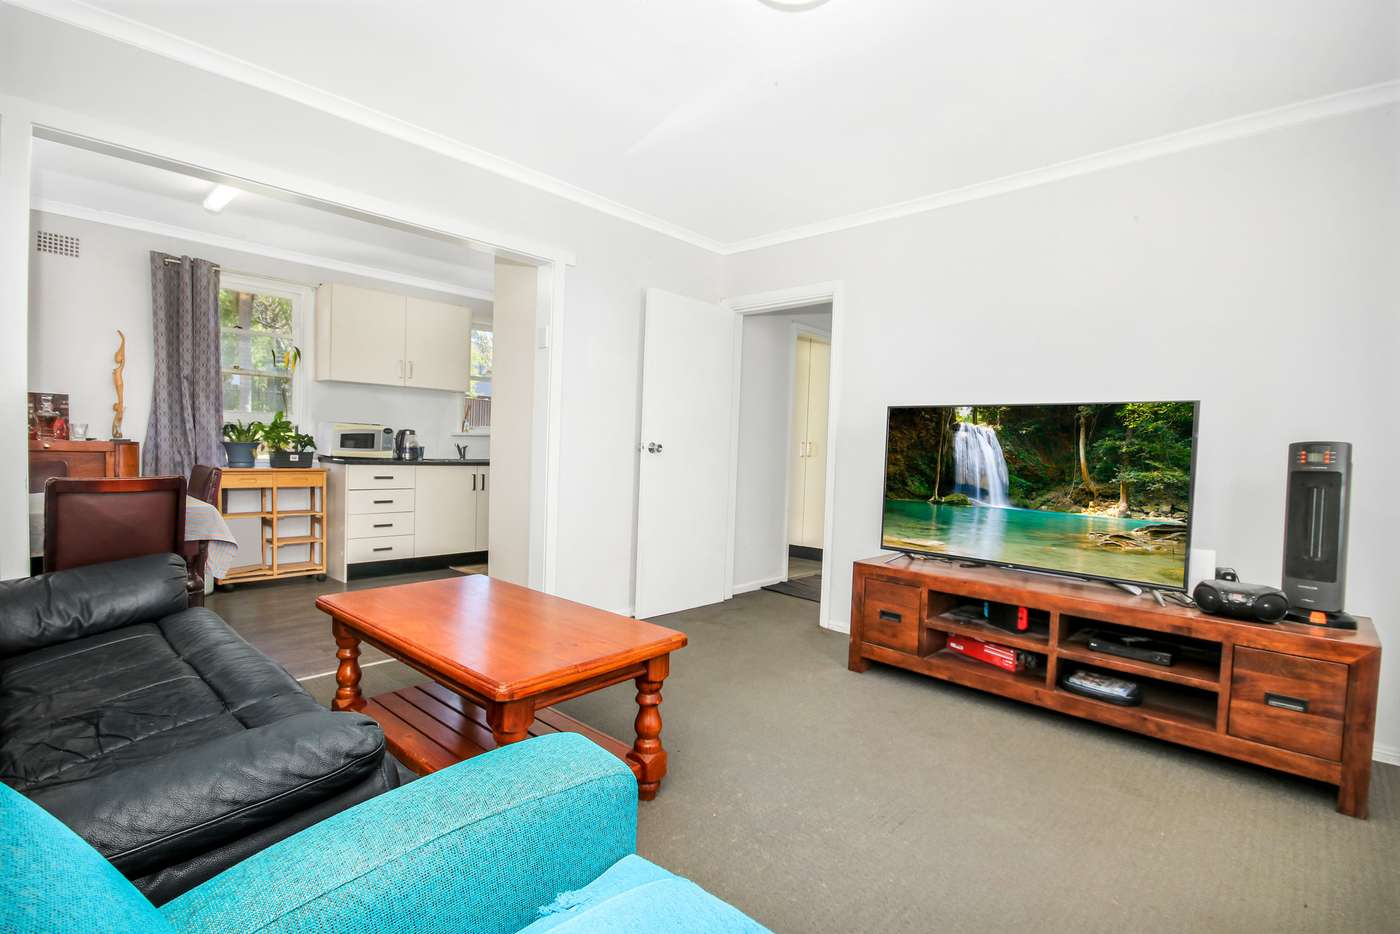 Fifth view of Homely house listing, 17 Robshaw Road, Marayong NSW 2148